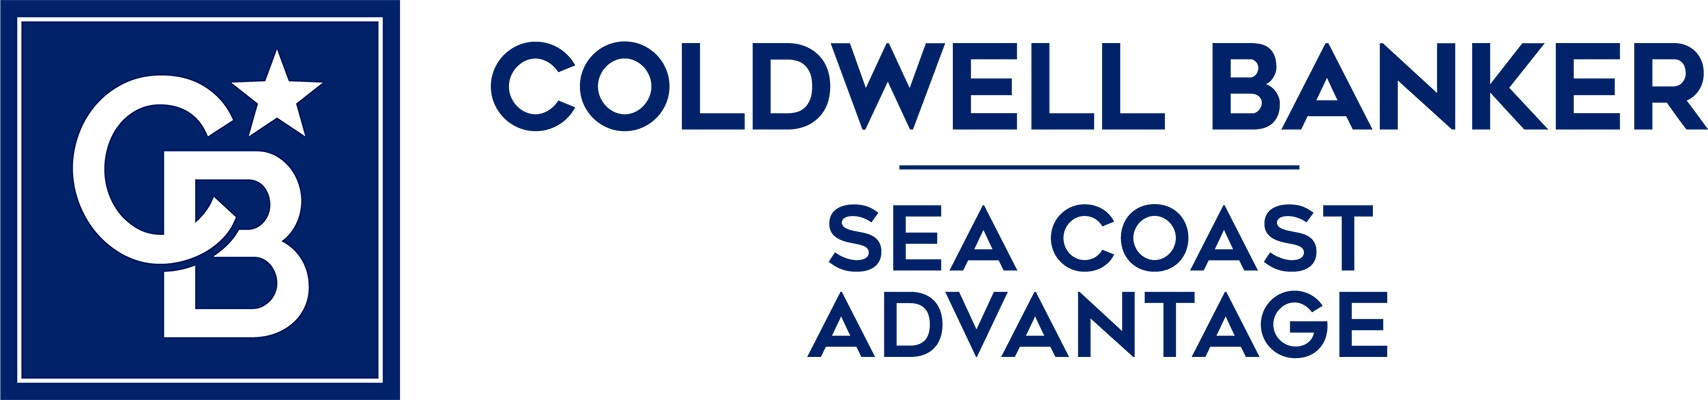 Morgan Talton - Coldwell Banker Sea Coast Advantage Realty Logo